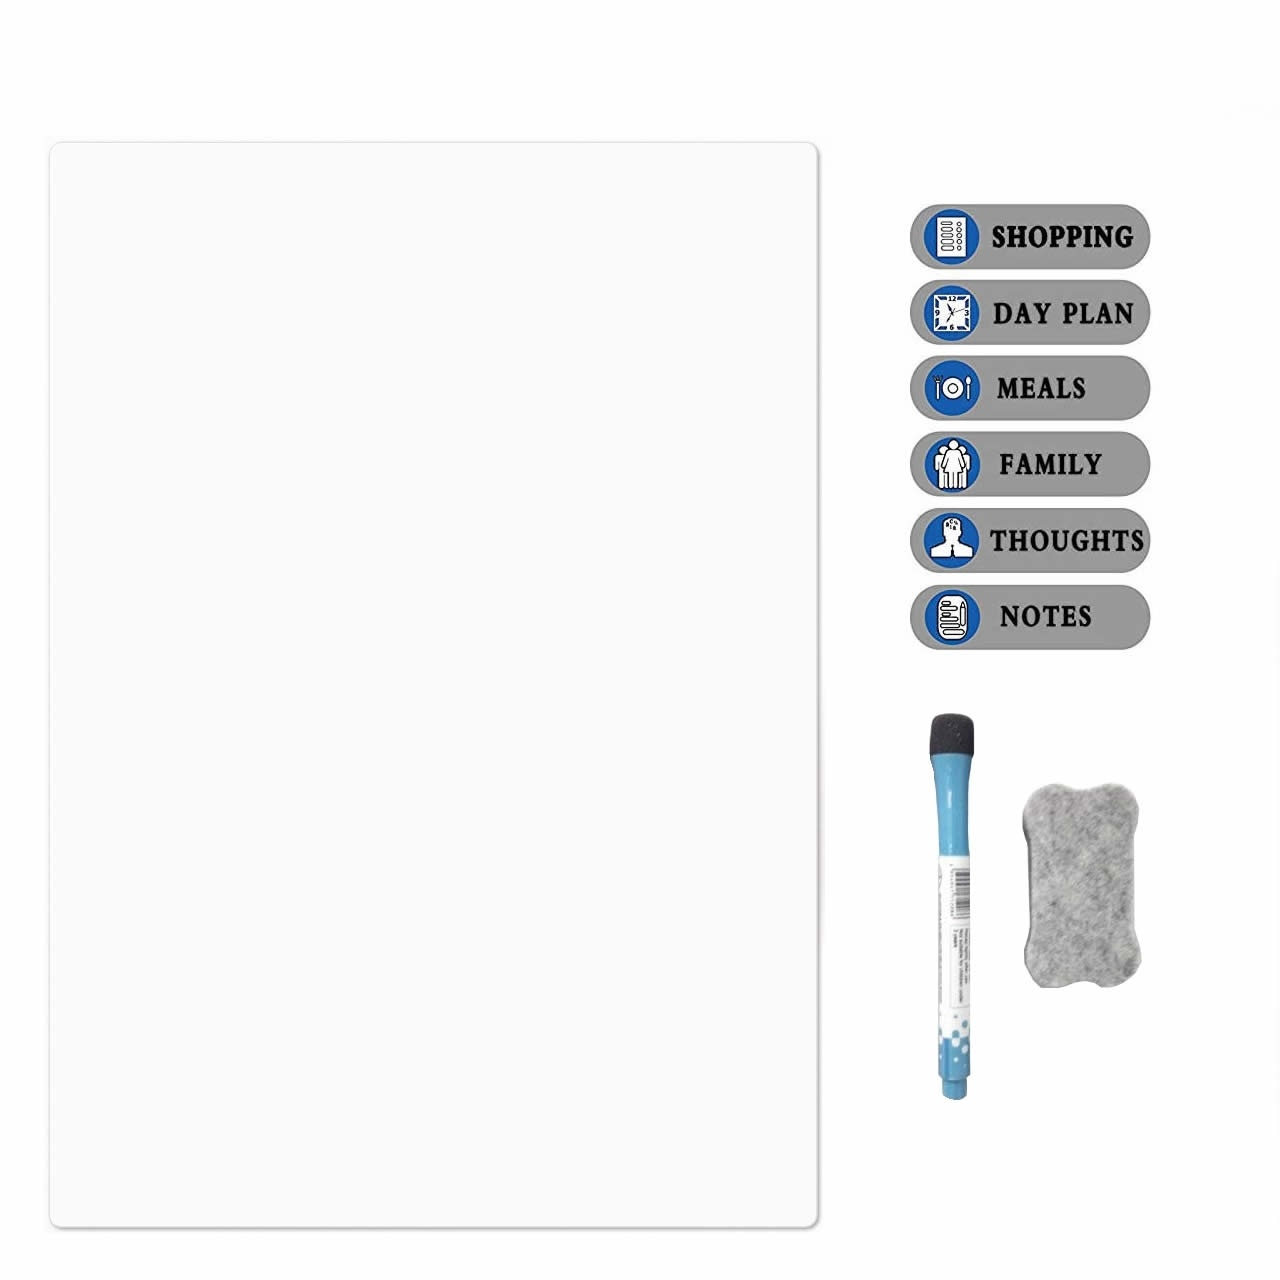 Dry Erase Whiteboard Refrigerator Calendar A4 Calendar White Board For Fridge Monthly Planner  Perfect Planner To Stay Organized